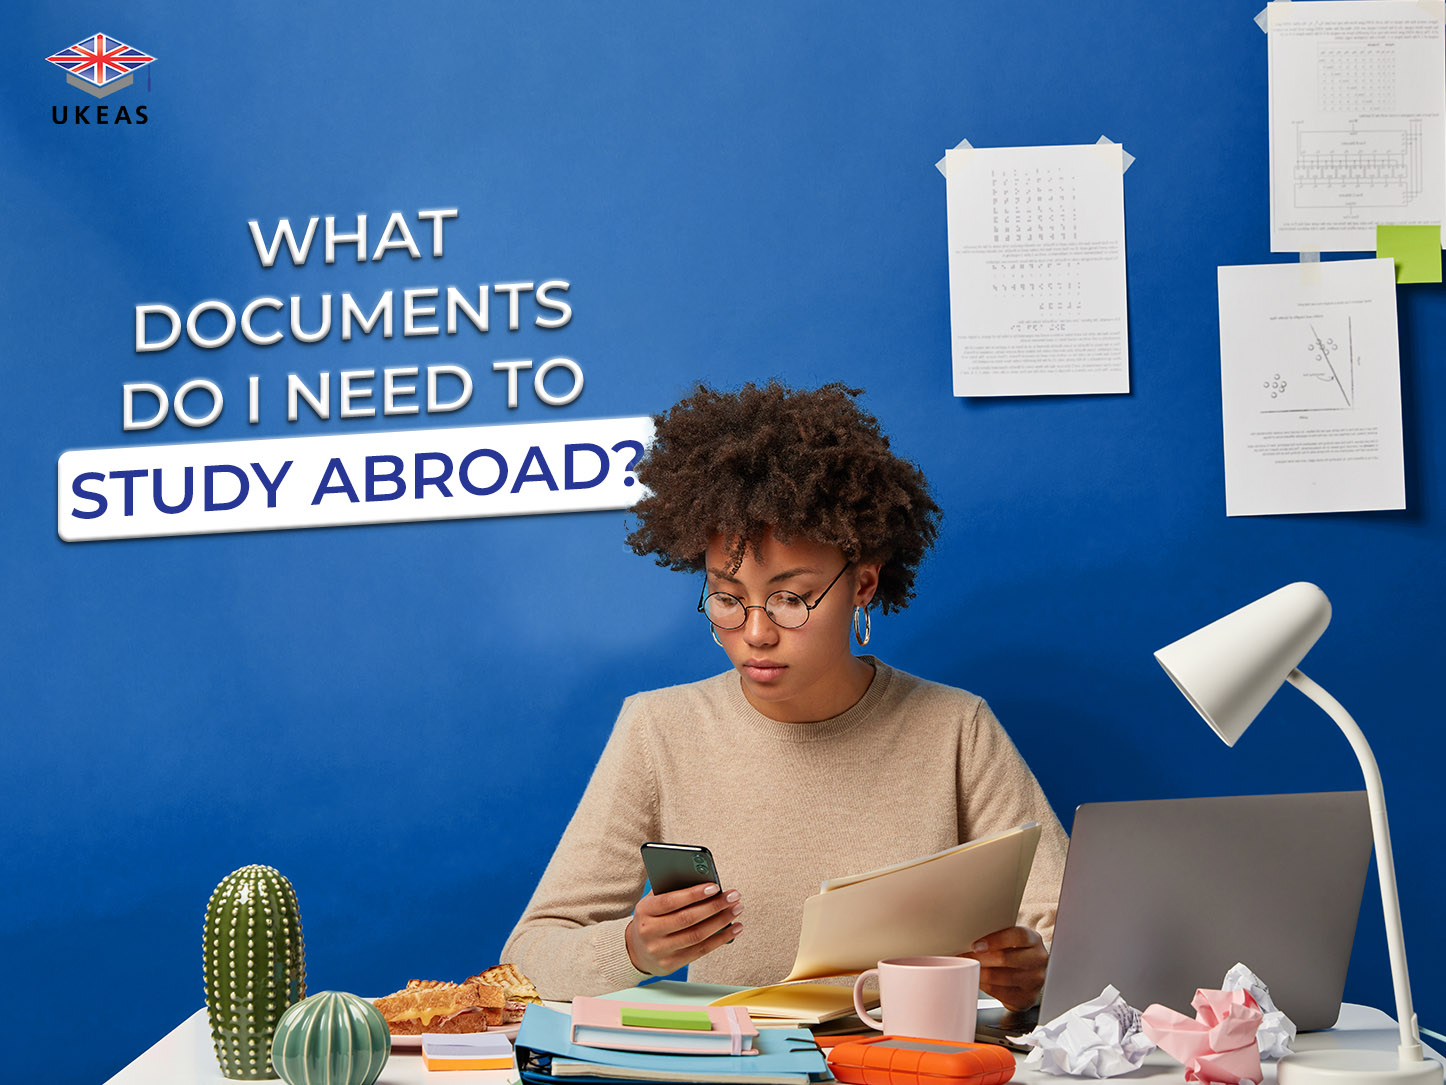 What documents do I need to study abroad?